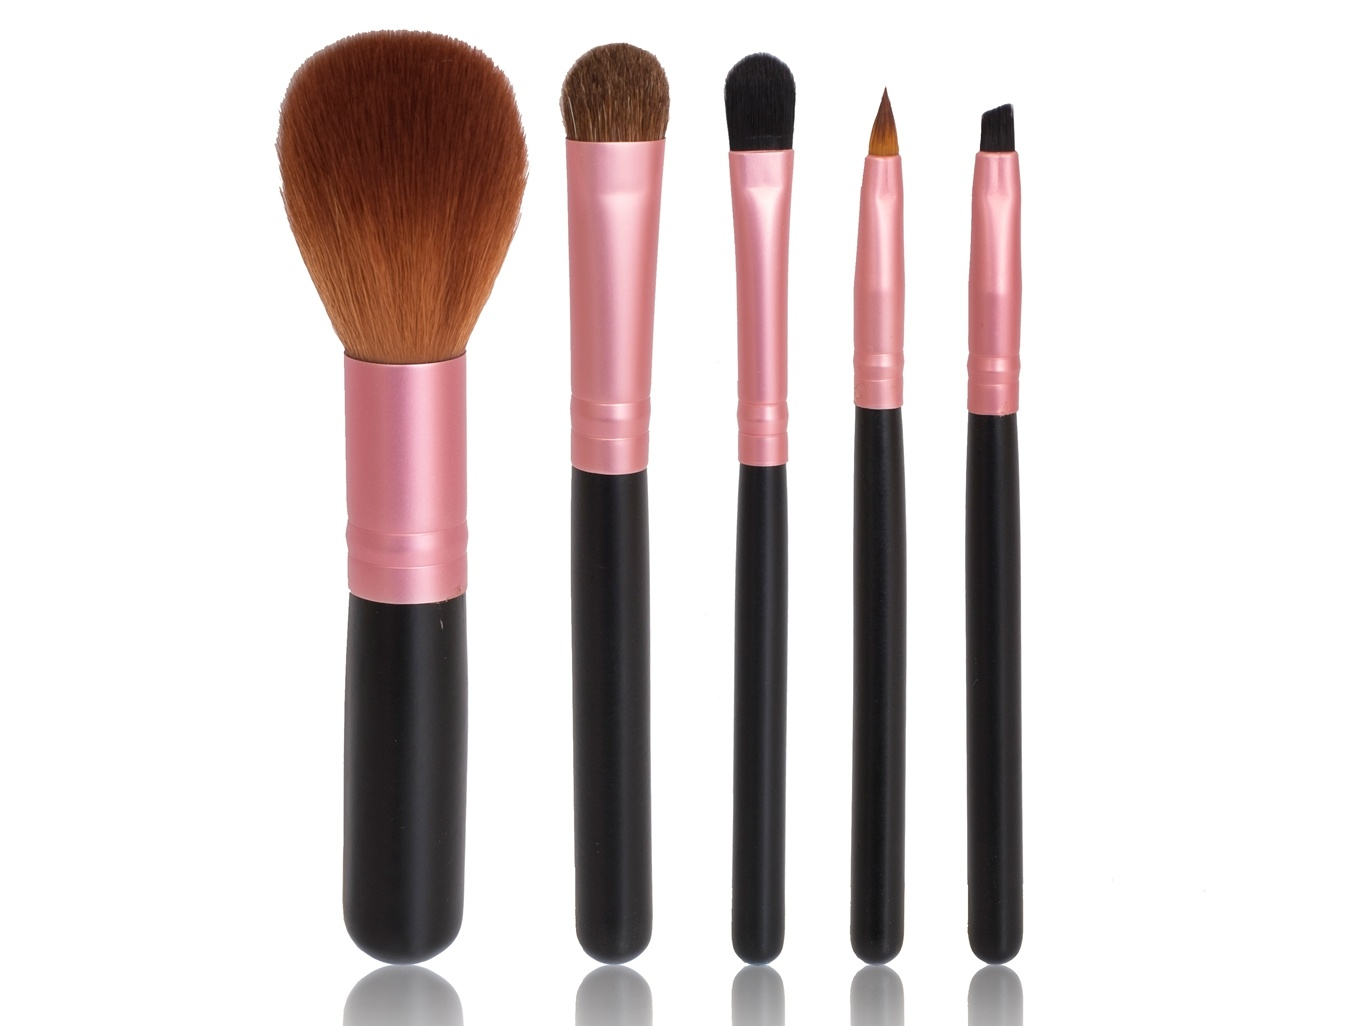 5PCS Mini Makeup Brush Set with Pink Ferrule